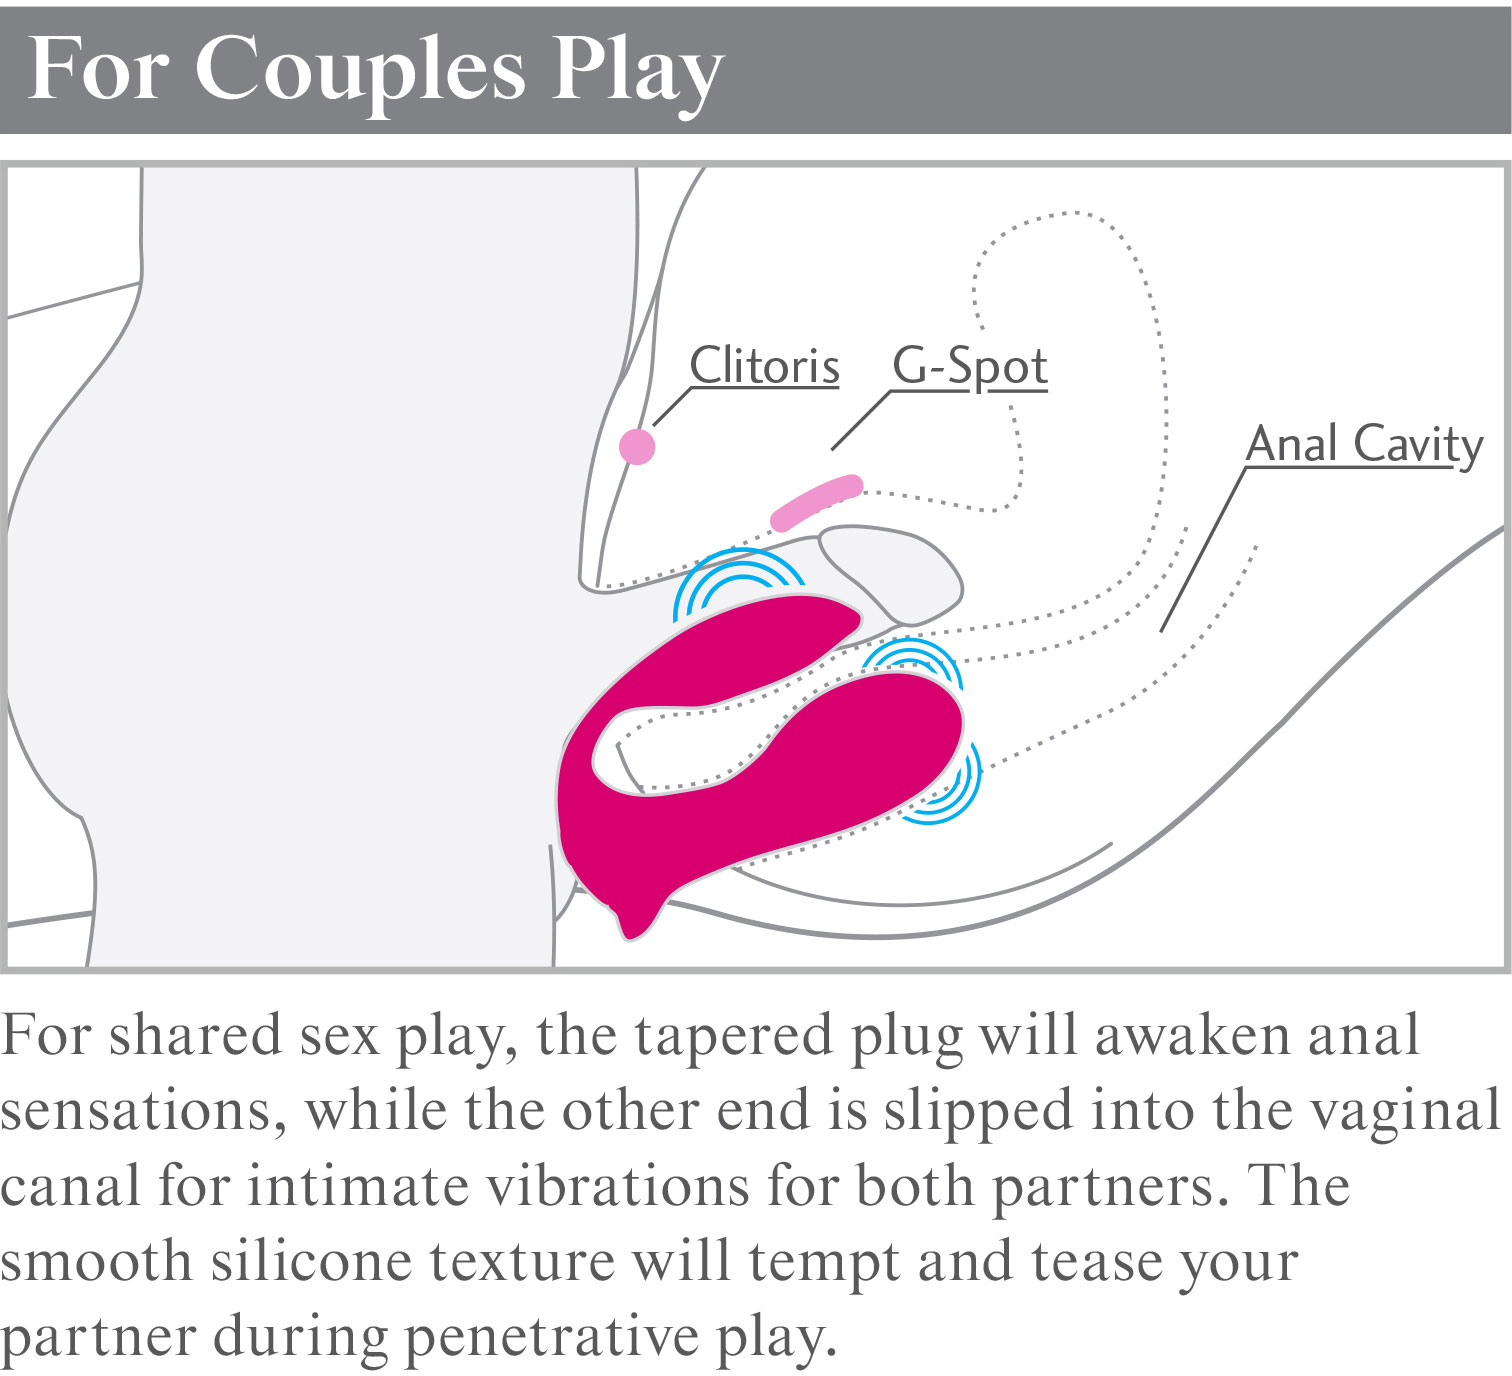 3Some Double Ecstasy Dual Stimulation Rechargeable Remote Controlled Silicone Vibrator - How To Couples Play